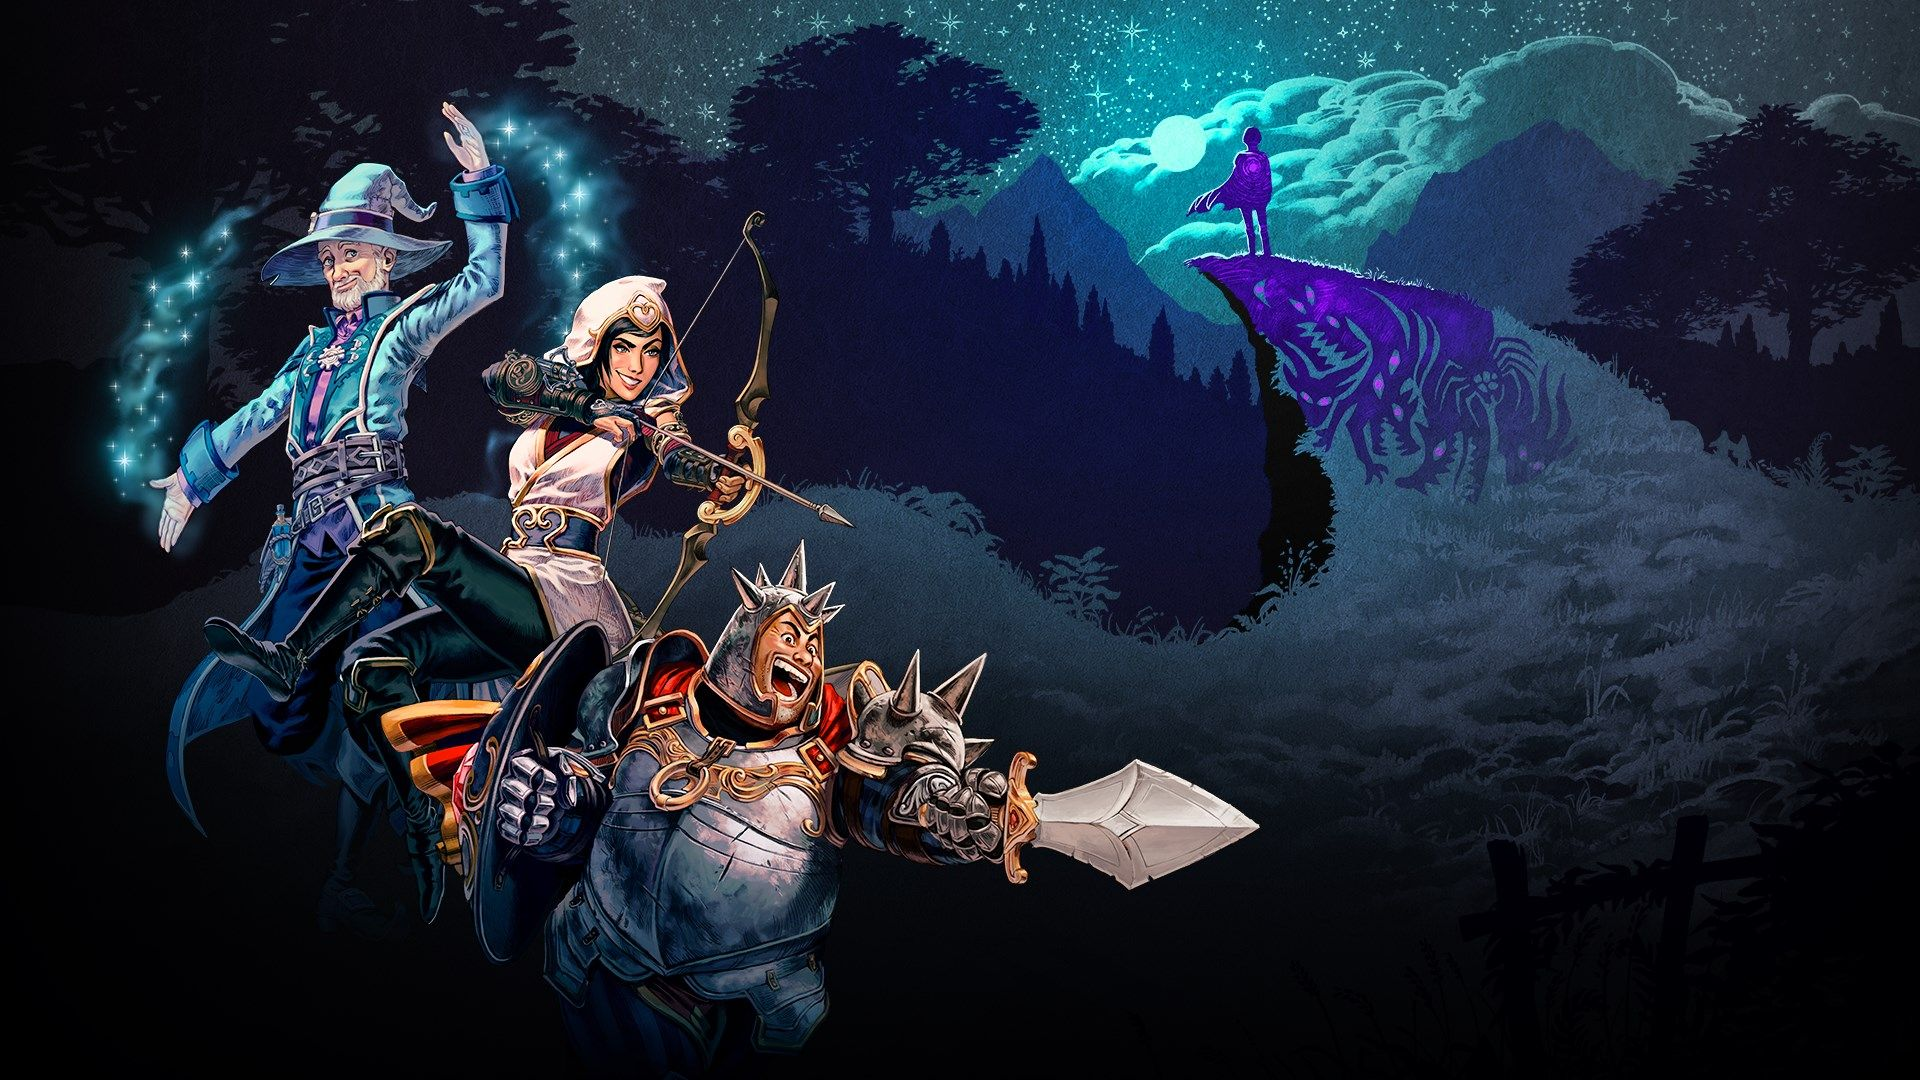 Video For The Gorgeous Co-Op World of Trine 4, Out Now on Xbox One